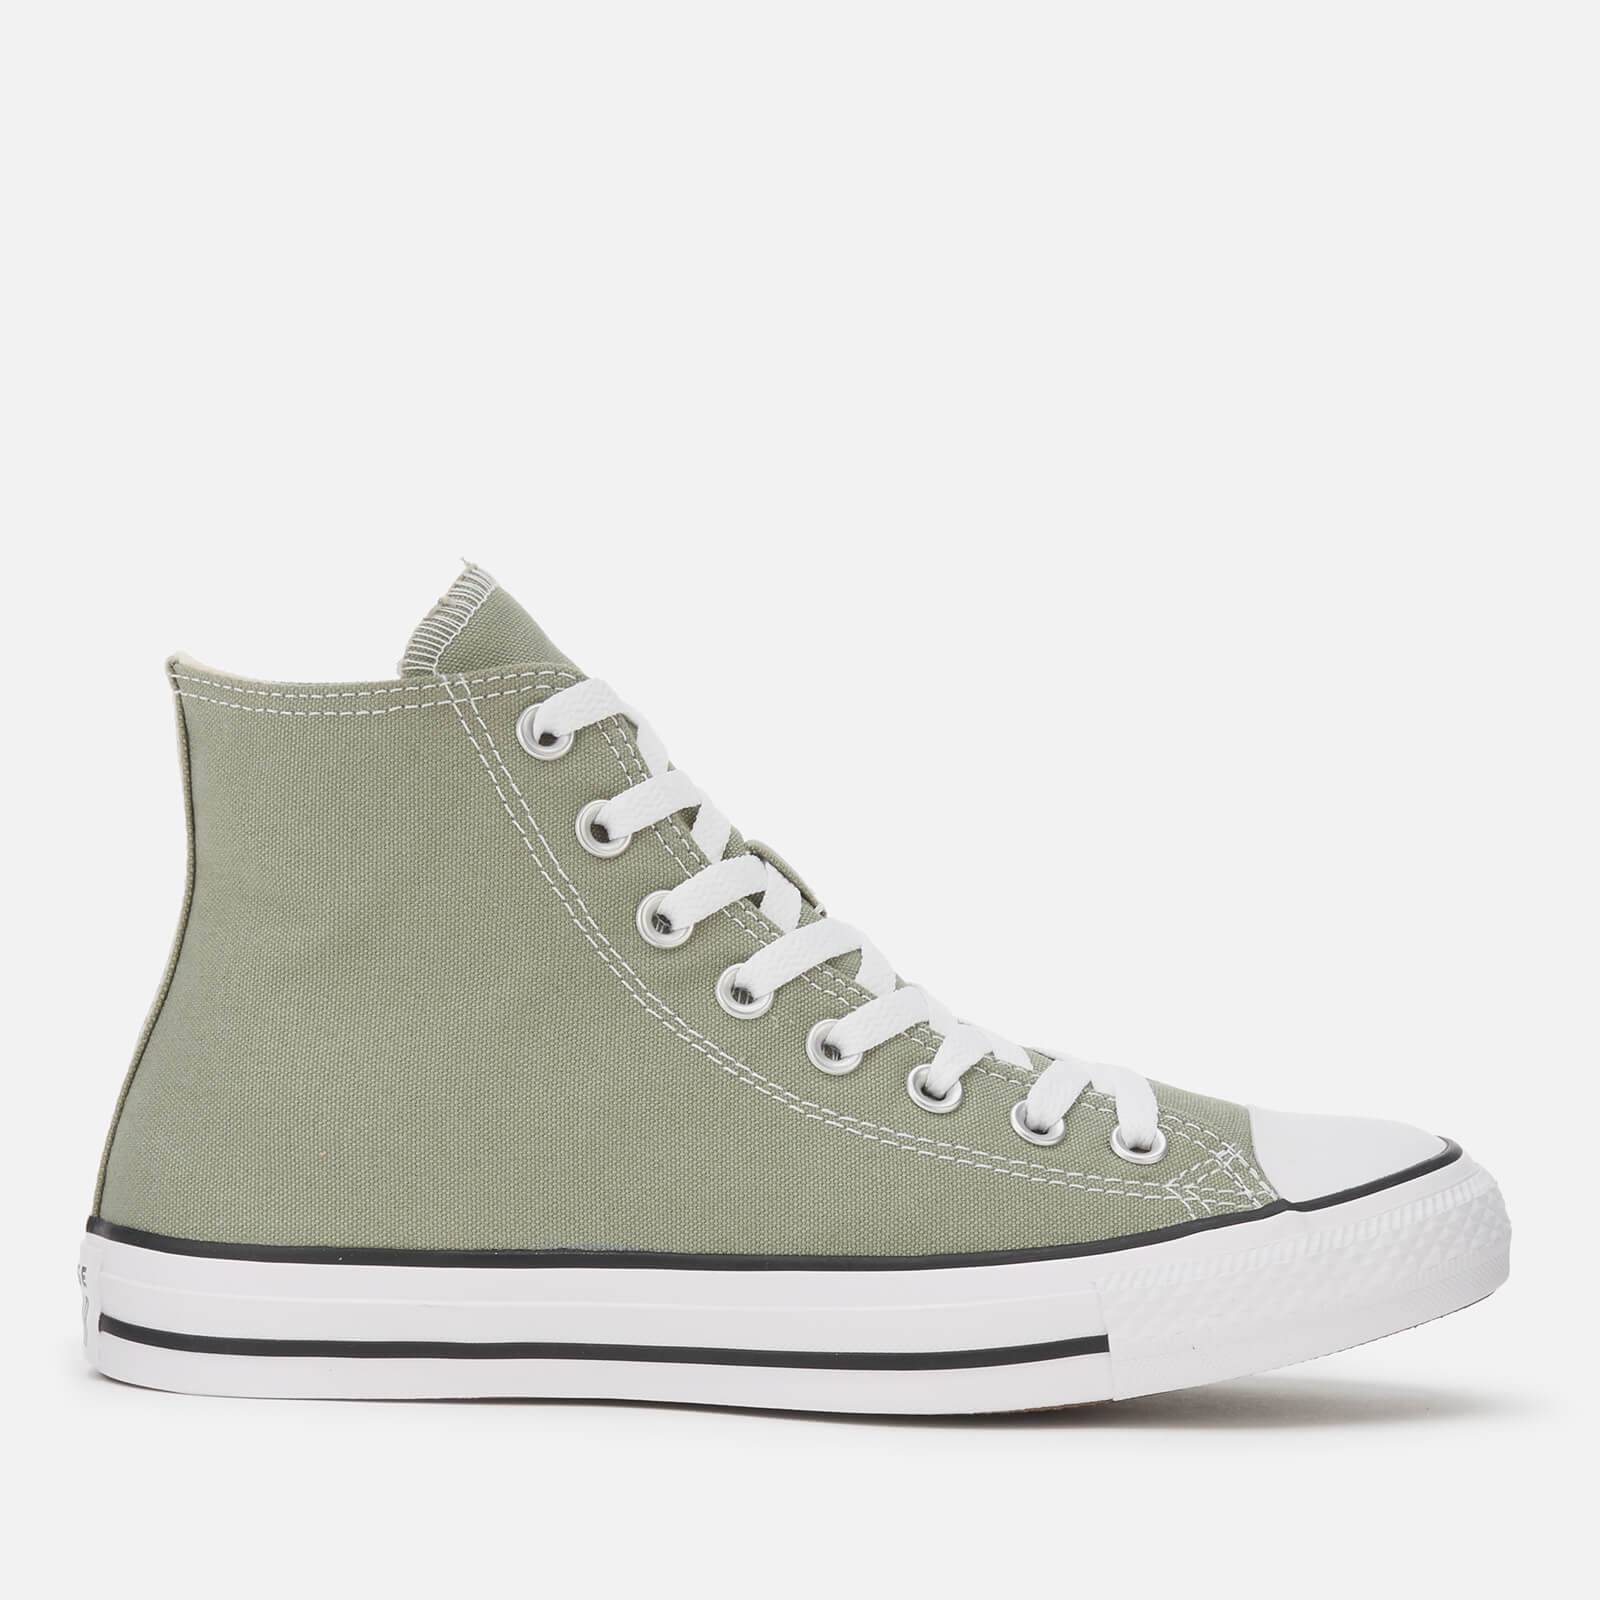 Converse Chuck Taylor All Star Seasonal Color Ox Trainers - Jade Stone - UK 9 - Green